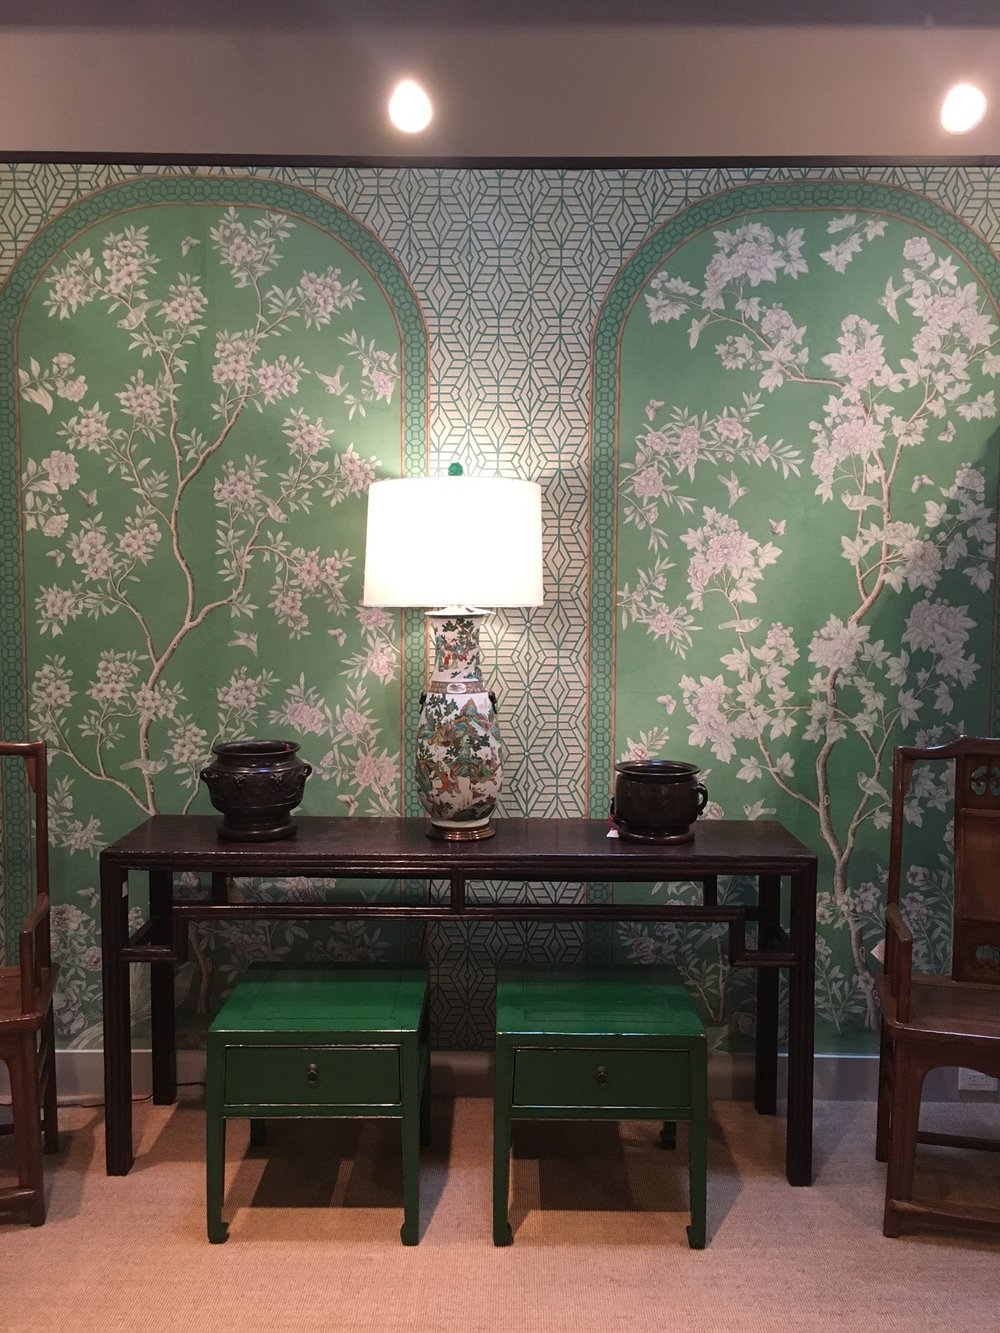 Gracie 's handpainted wallpapers are STUNNING. Their showroom was beautiful to walk through. Can you tell I'm crushing on green right now?!